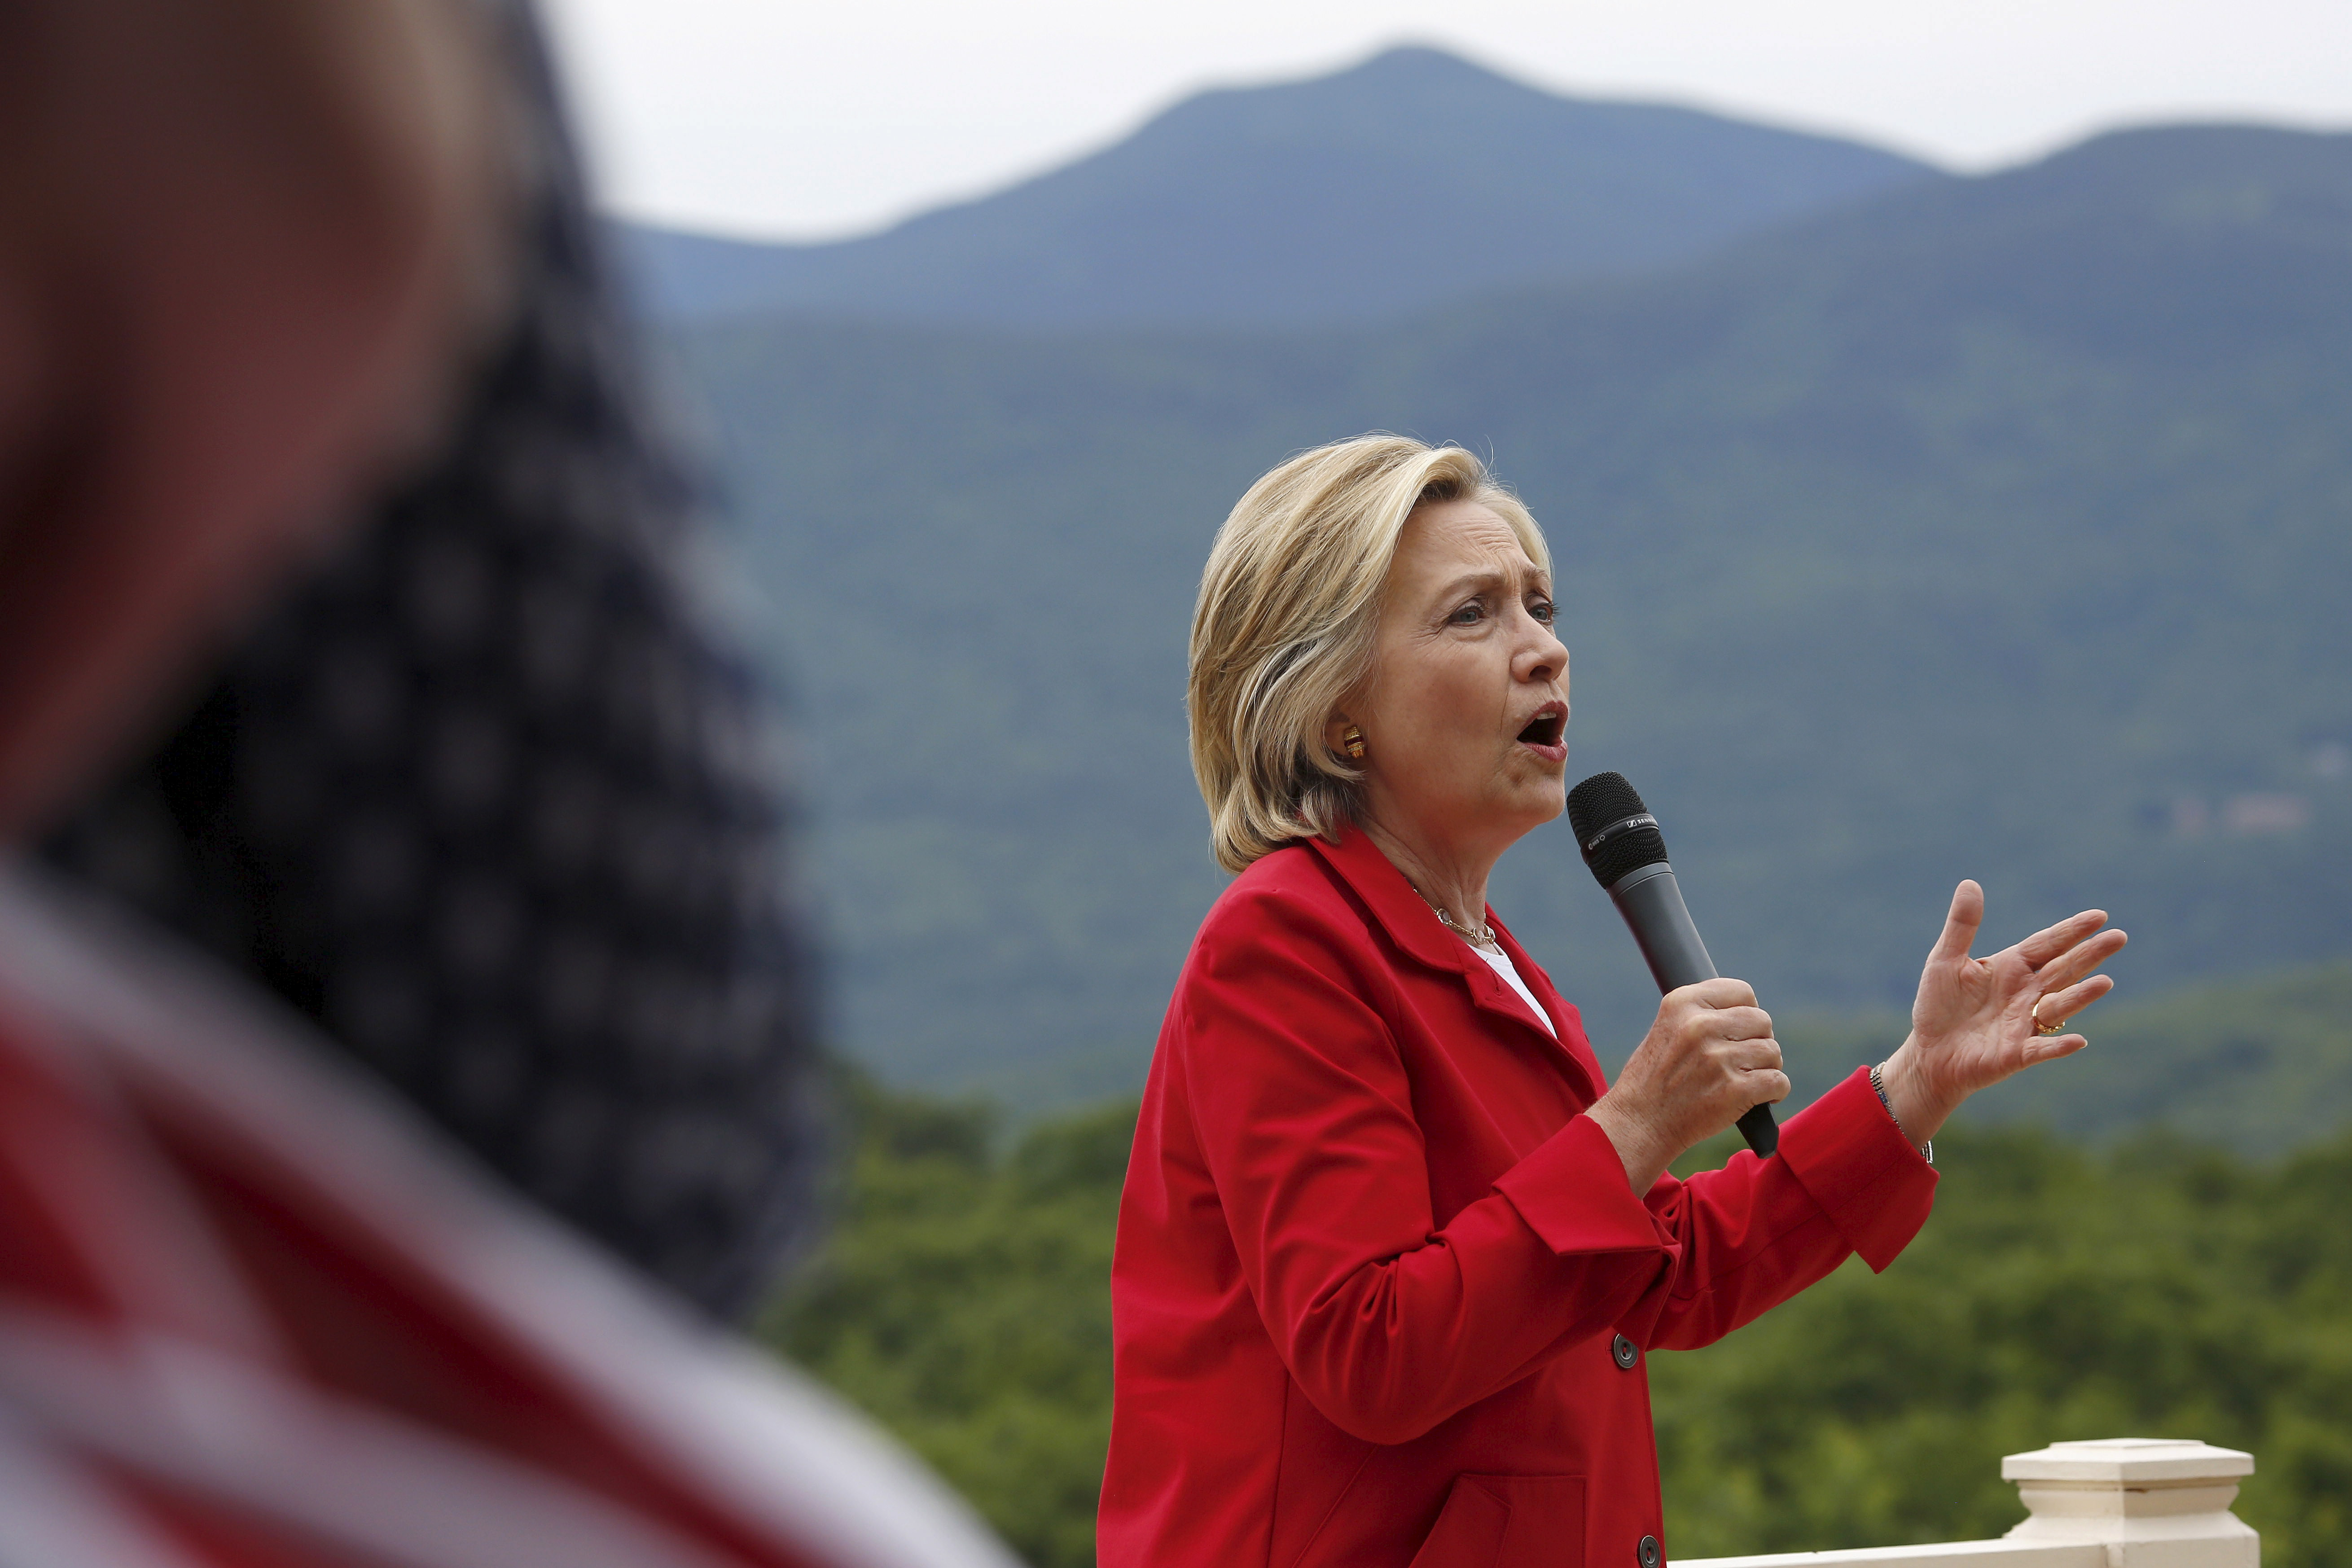 Former U.S. Secretary of State and Democratic presidential candidate Hillary Clinton speaks to supporters during a campaign event in Glen, N.H., on July 4, 2015